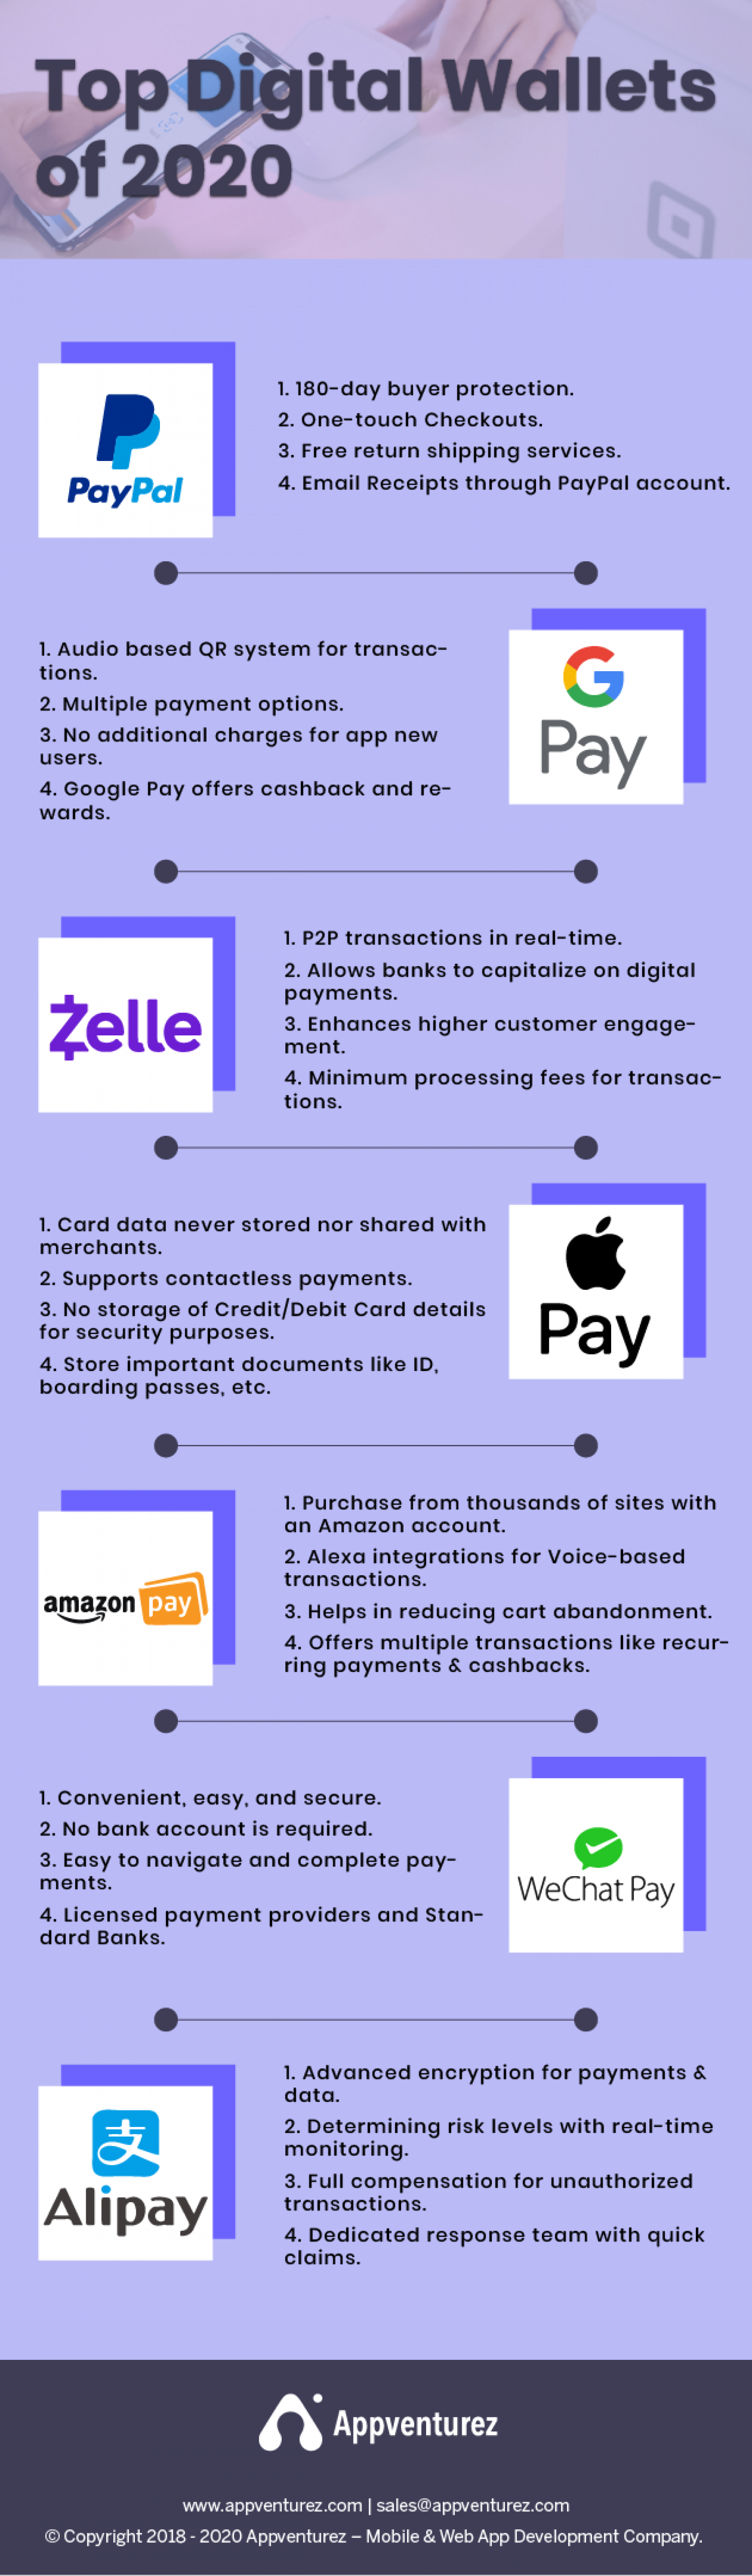 Top 7 most prevalent digital wallet trends of 2020 Infographic